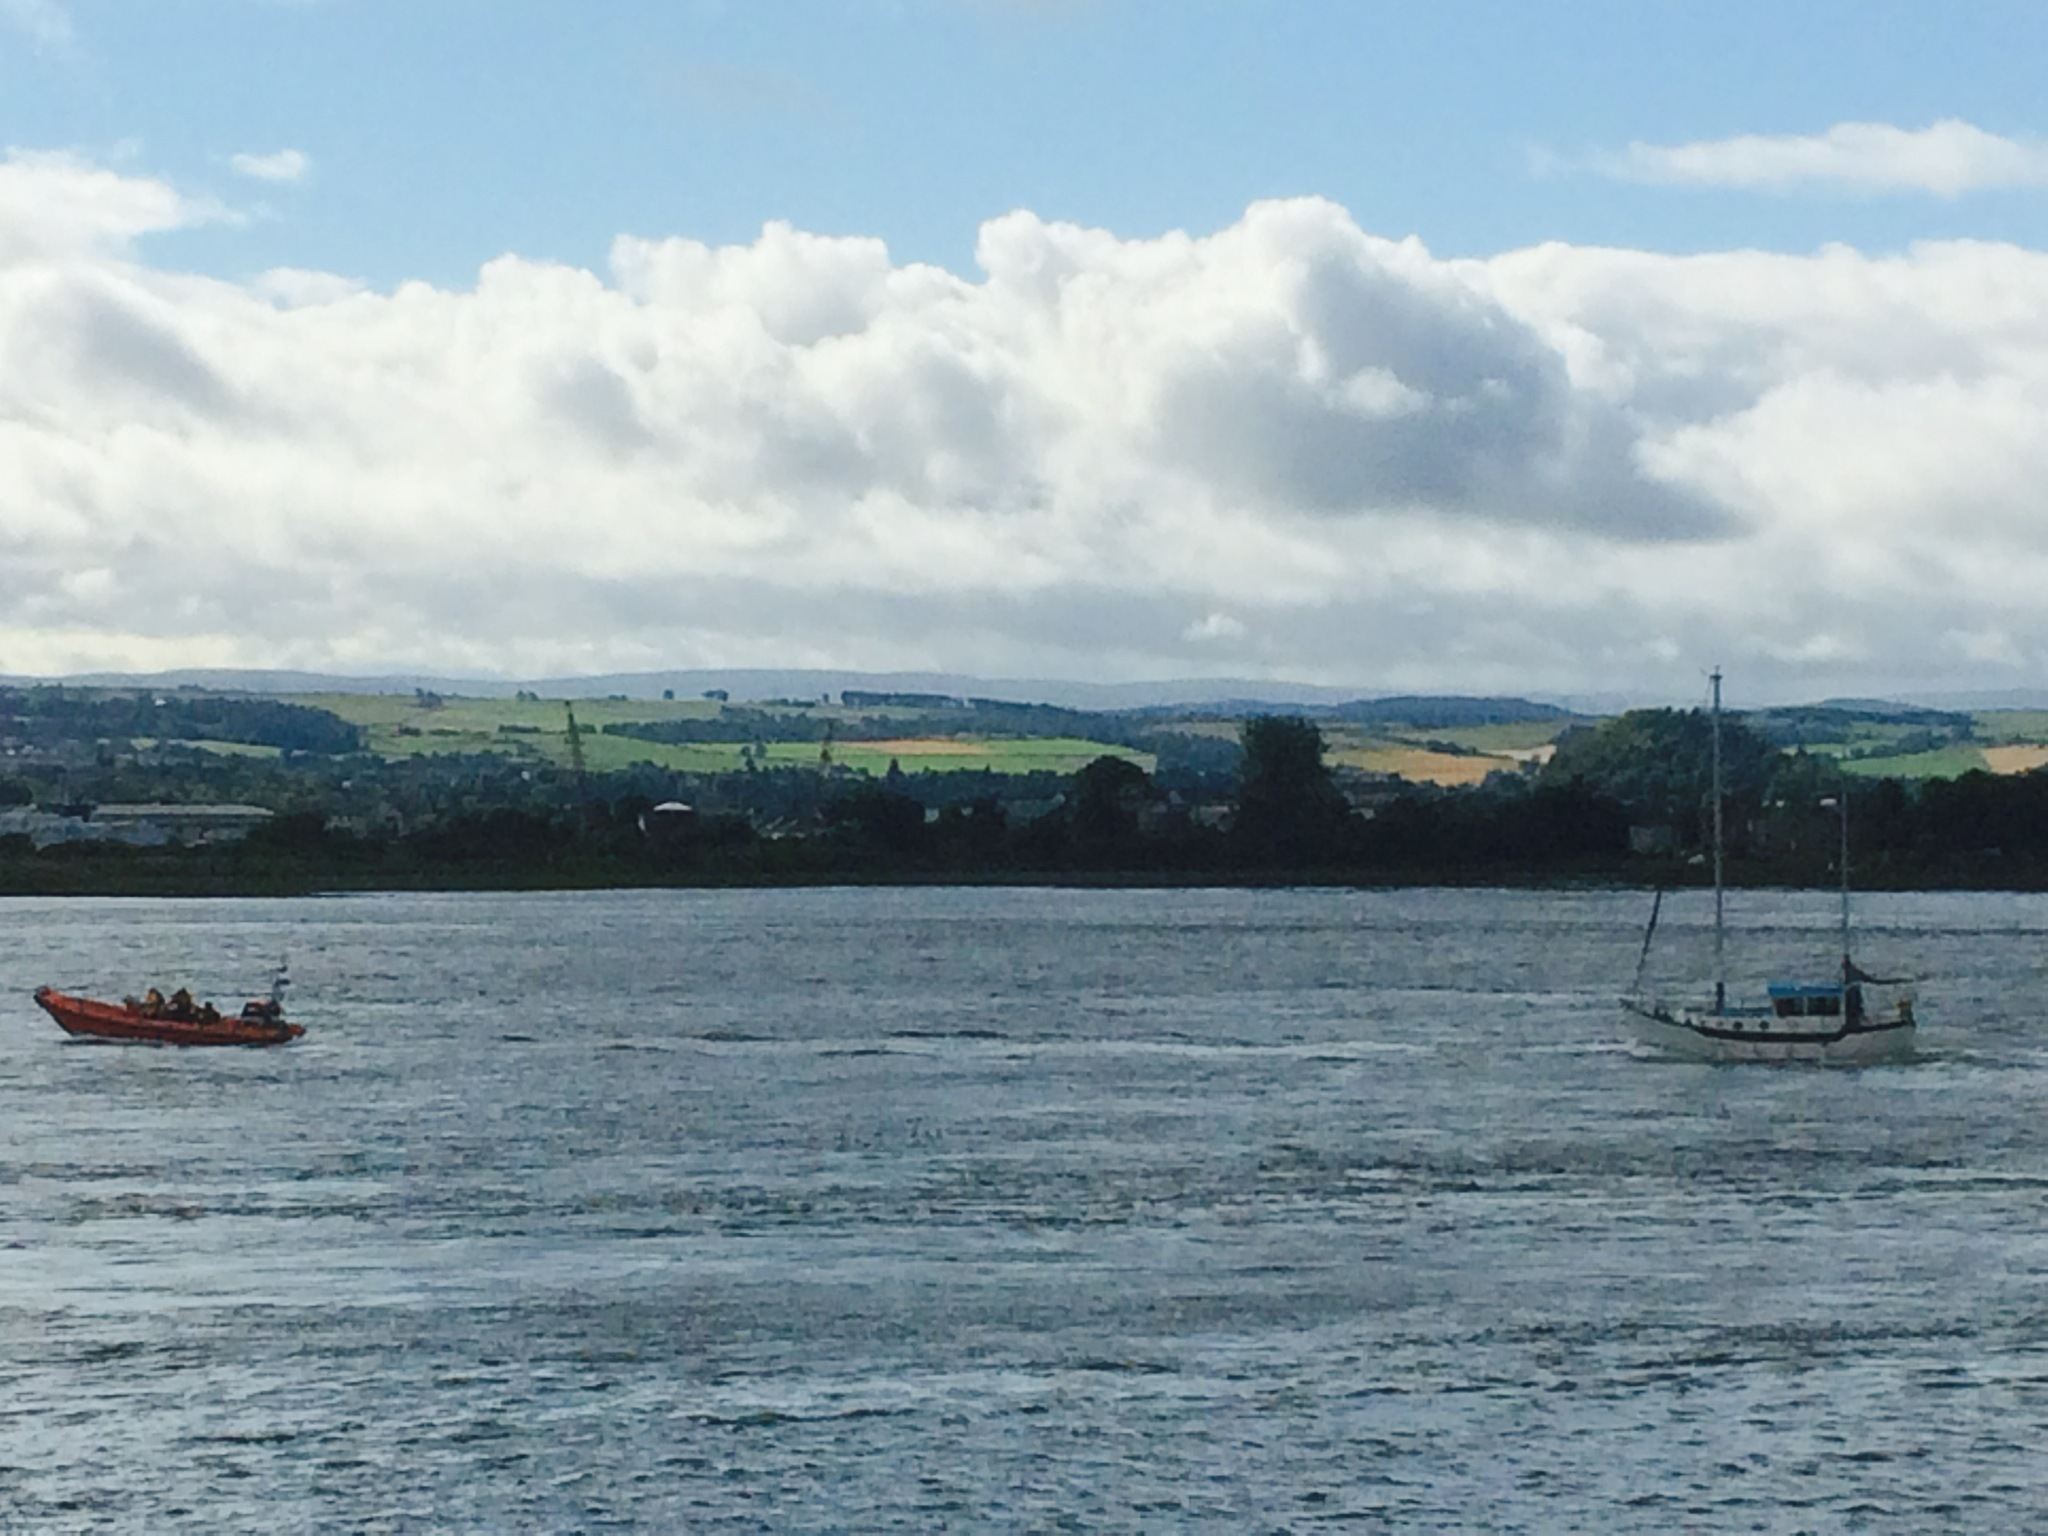 Kessock lifeboat tows the stricken yacht back to shore